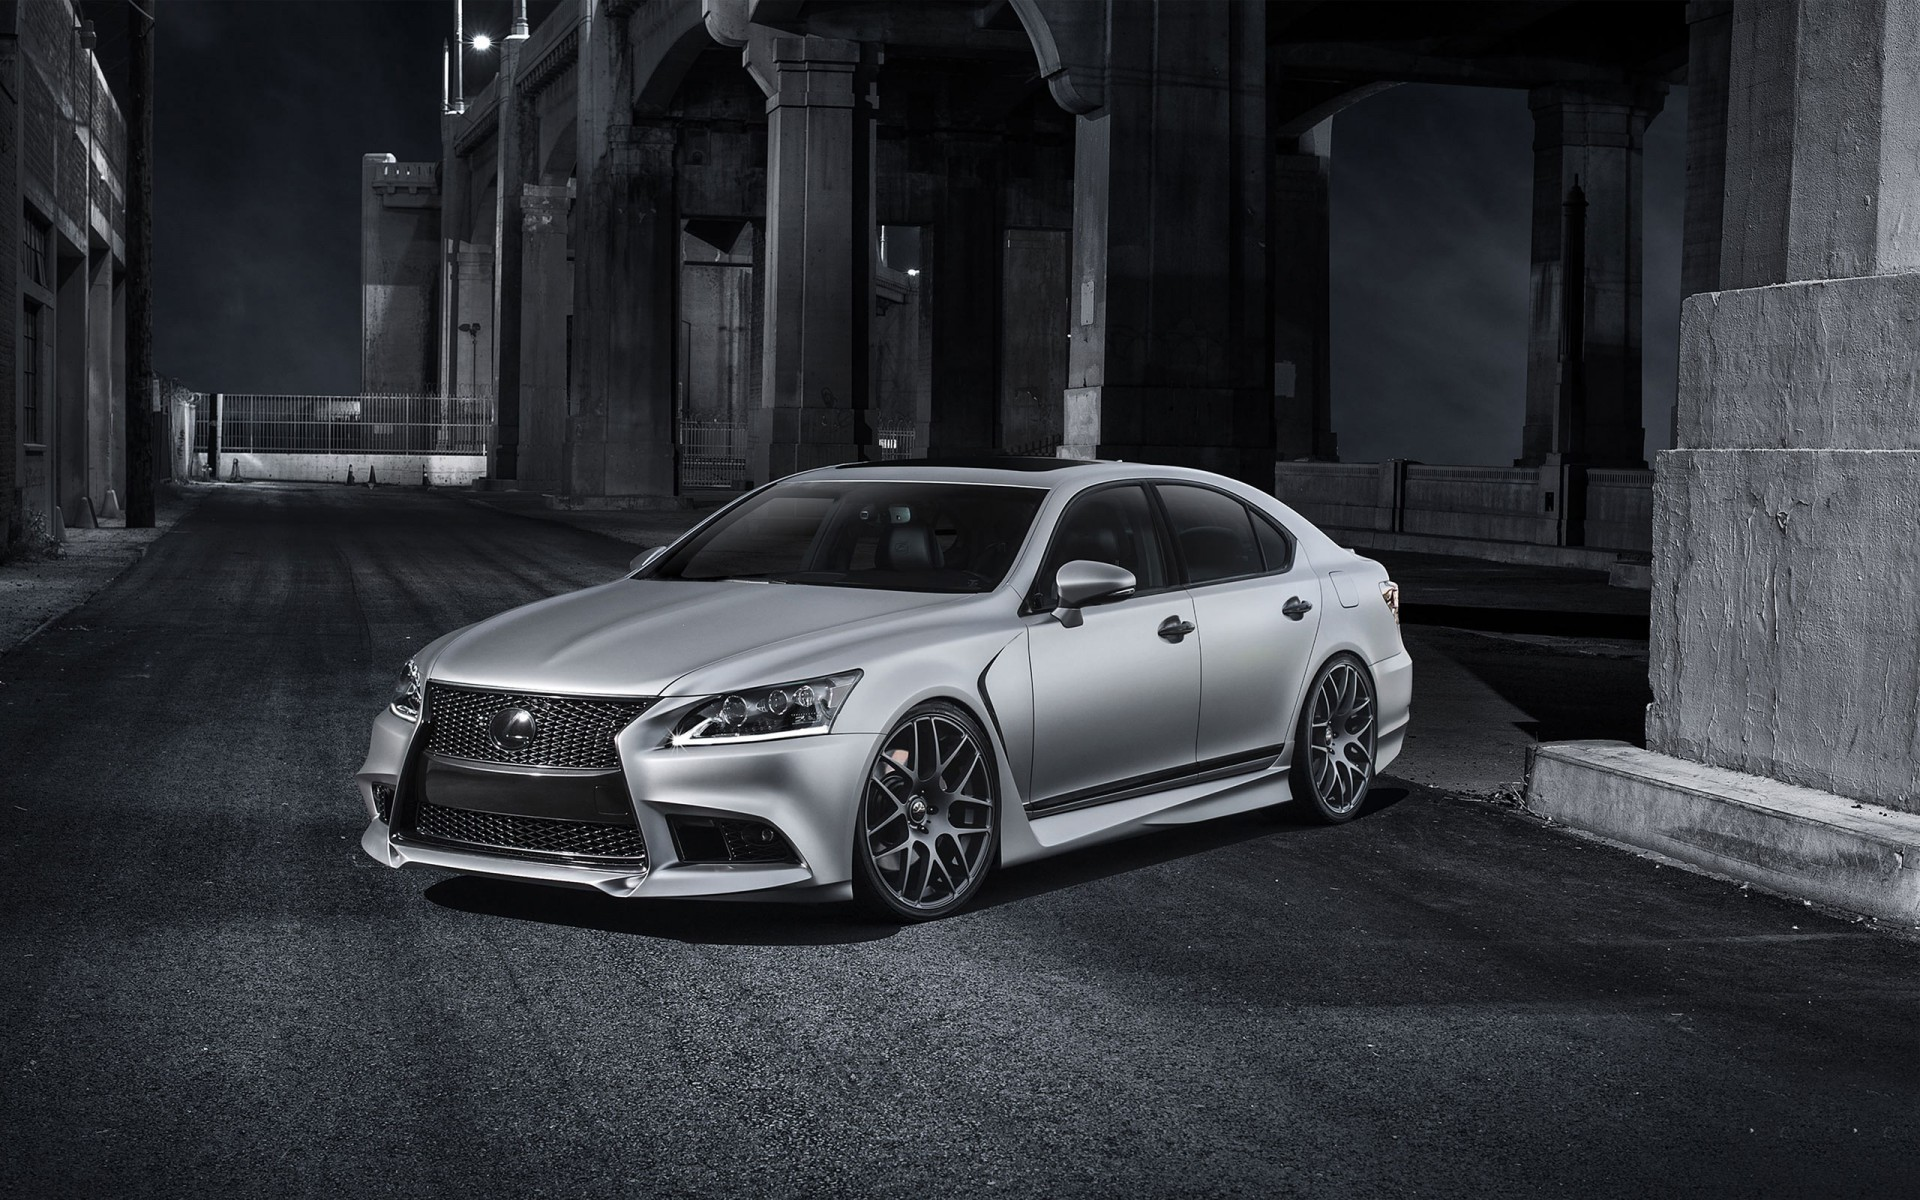 2012 Lexus Ls 460 F Sport Wallpaper Hd Car Wallpapers